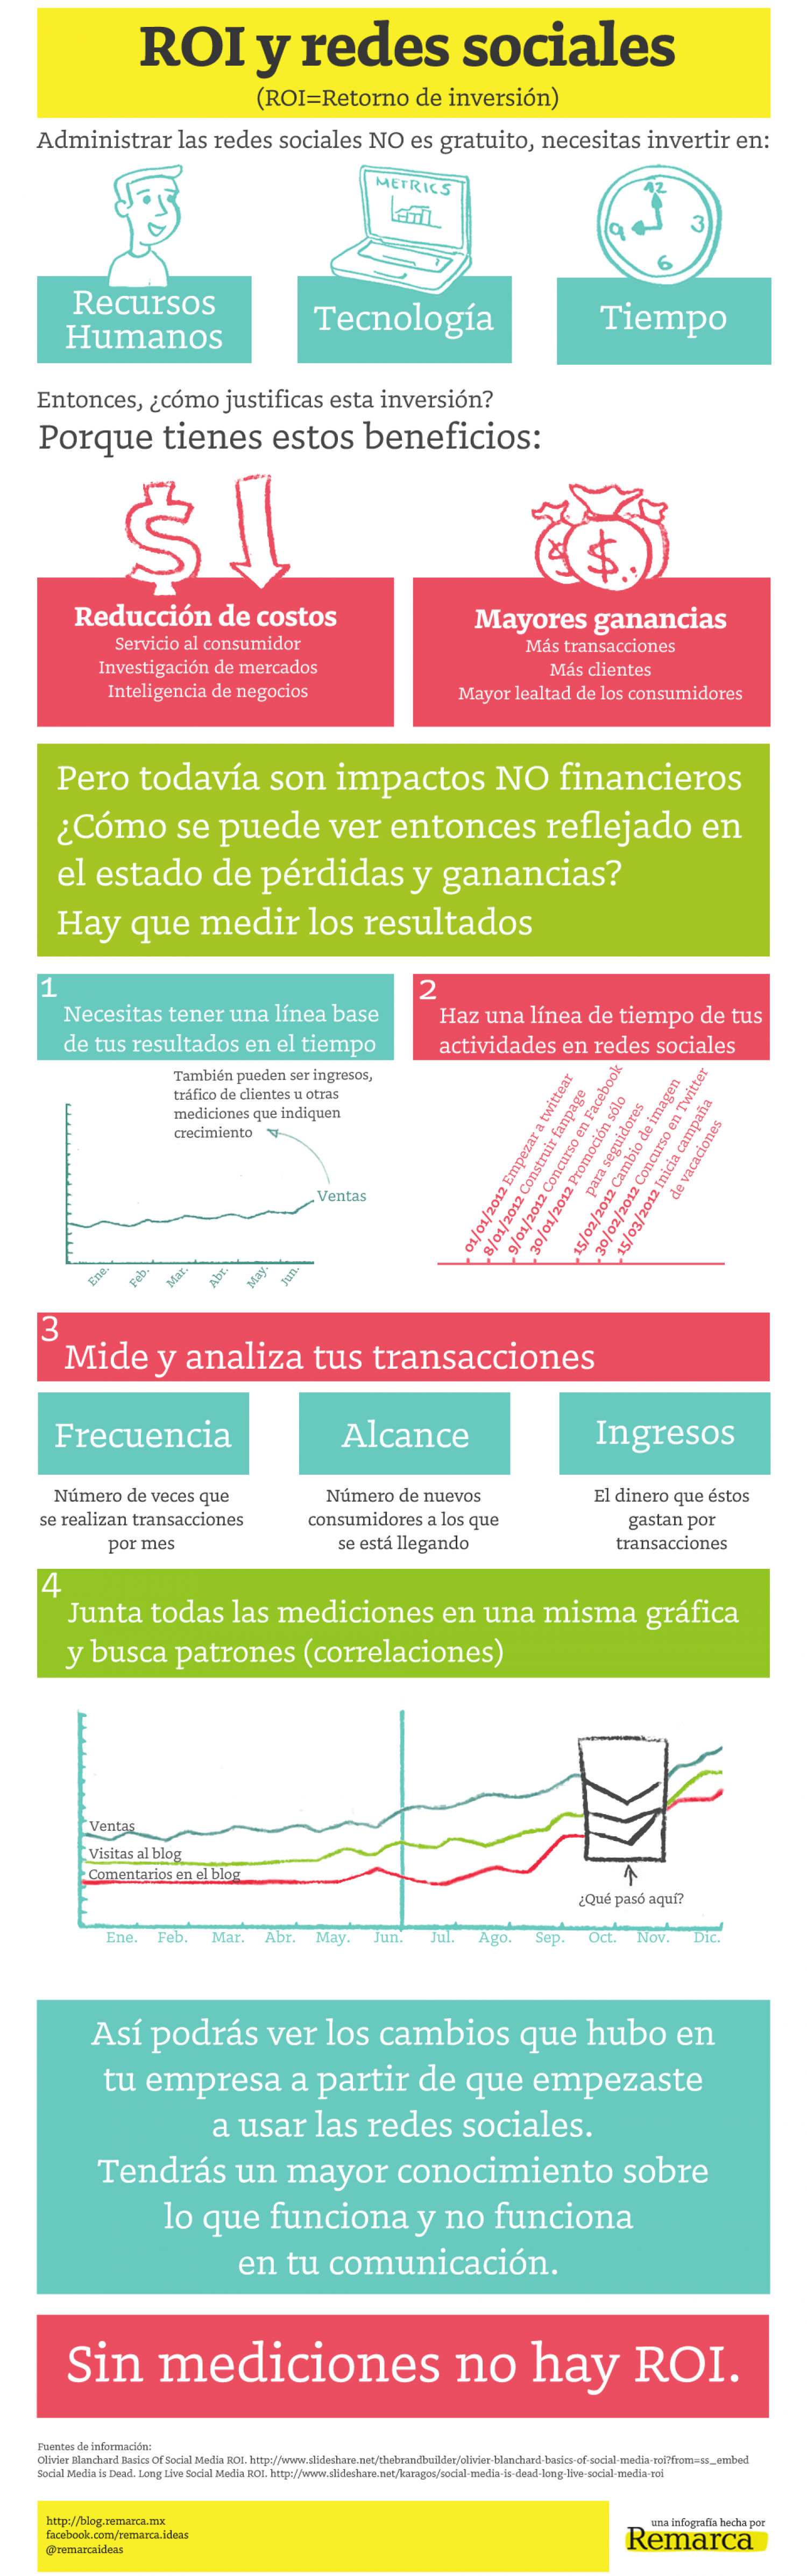 ROI y Redes Sociales Infographic